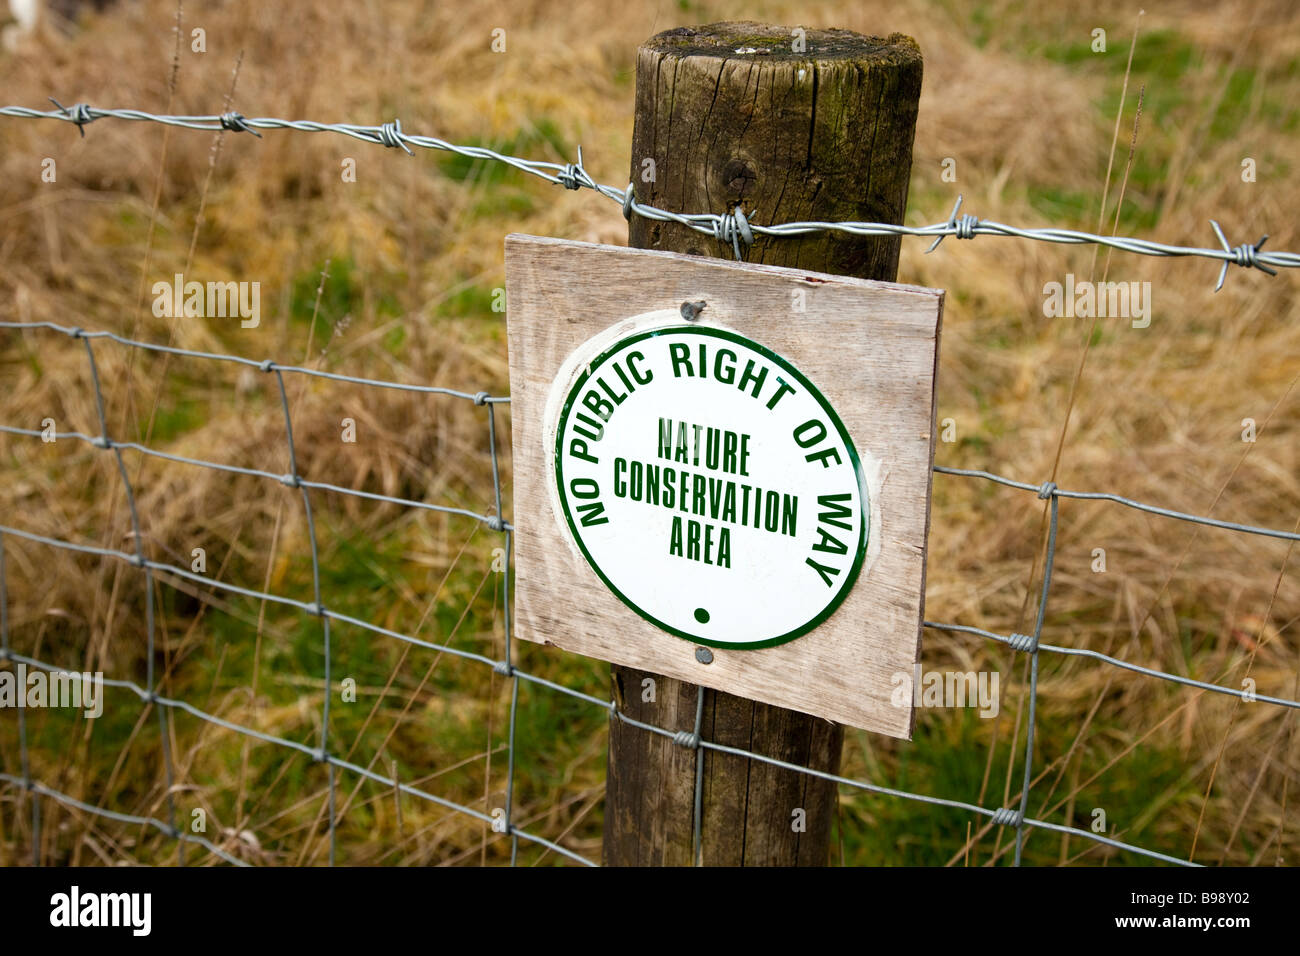 No Public Right of Way, Nature conservation area sign nailed to fence post - Stock Image